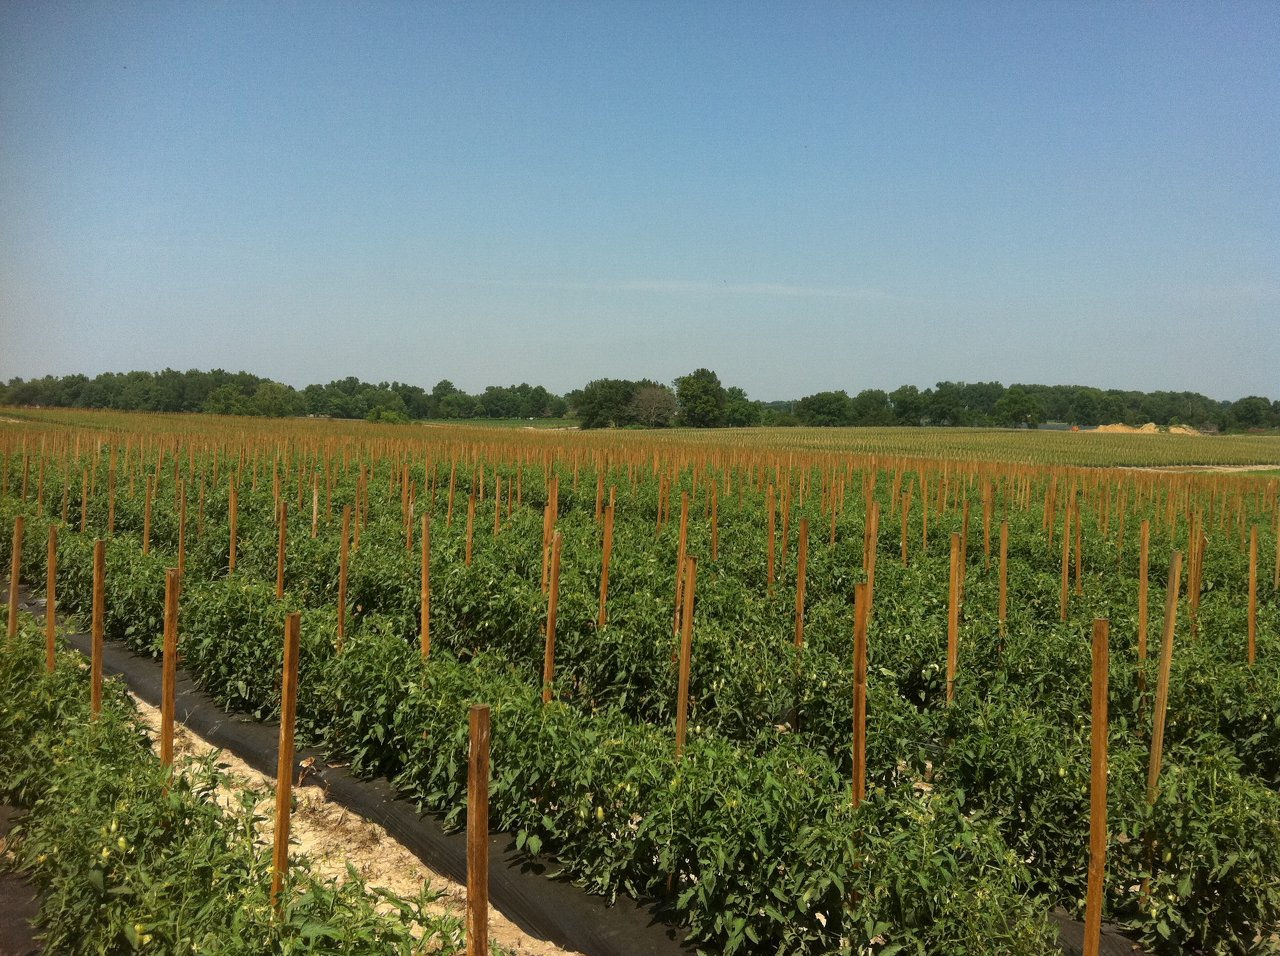 MISSOURI VEGETABLE FIELDS